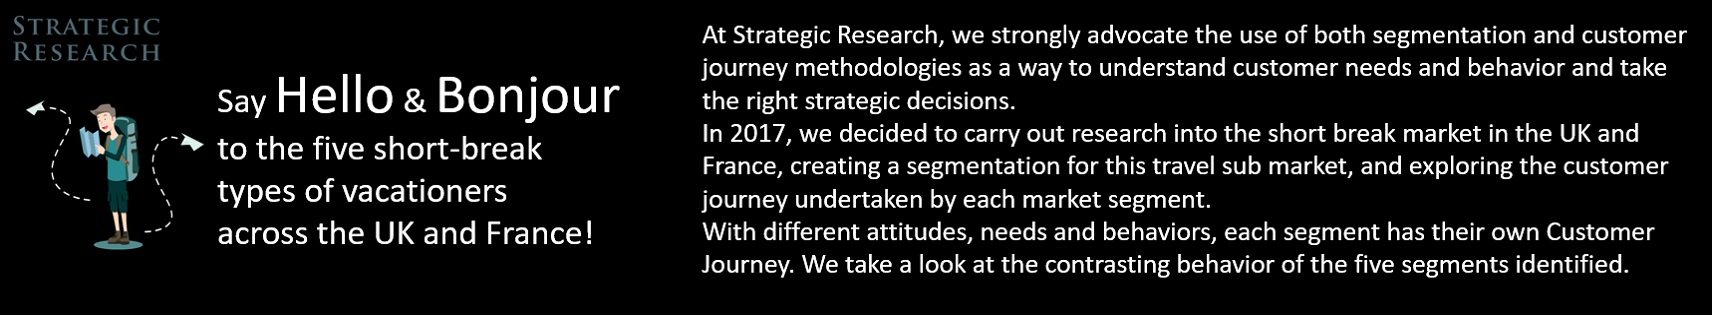 Consumer-journey-strategic-research-intro